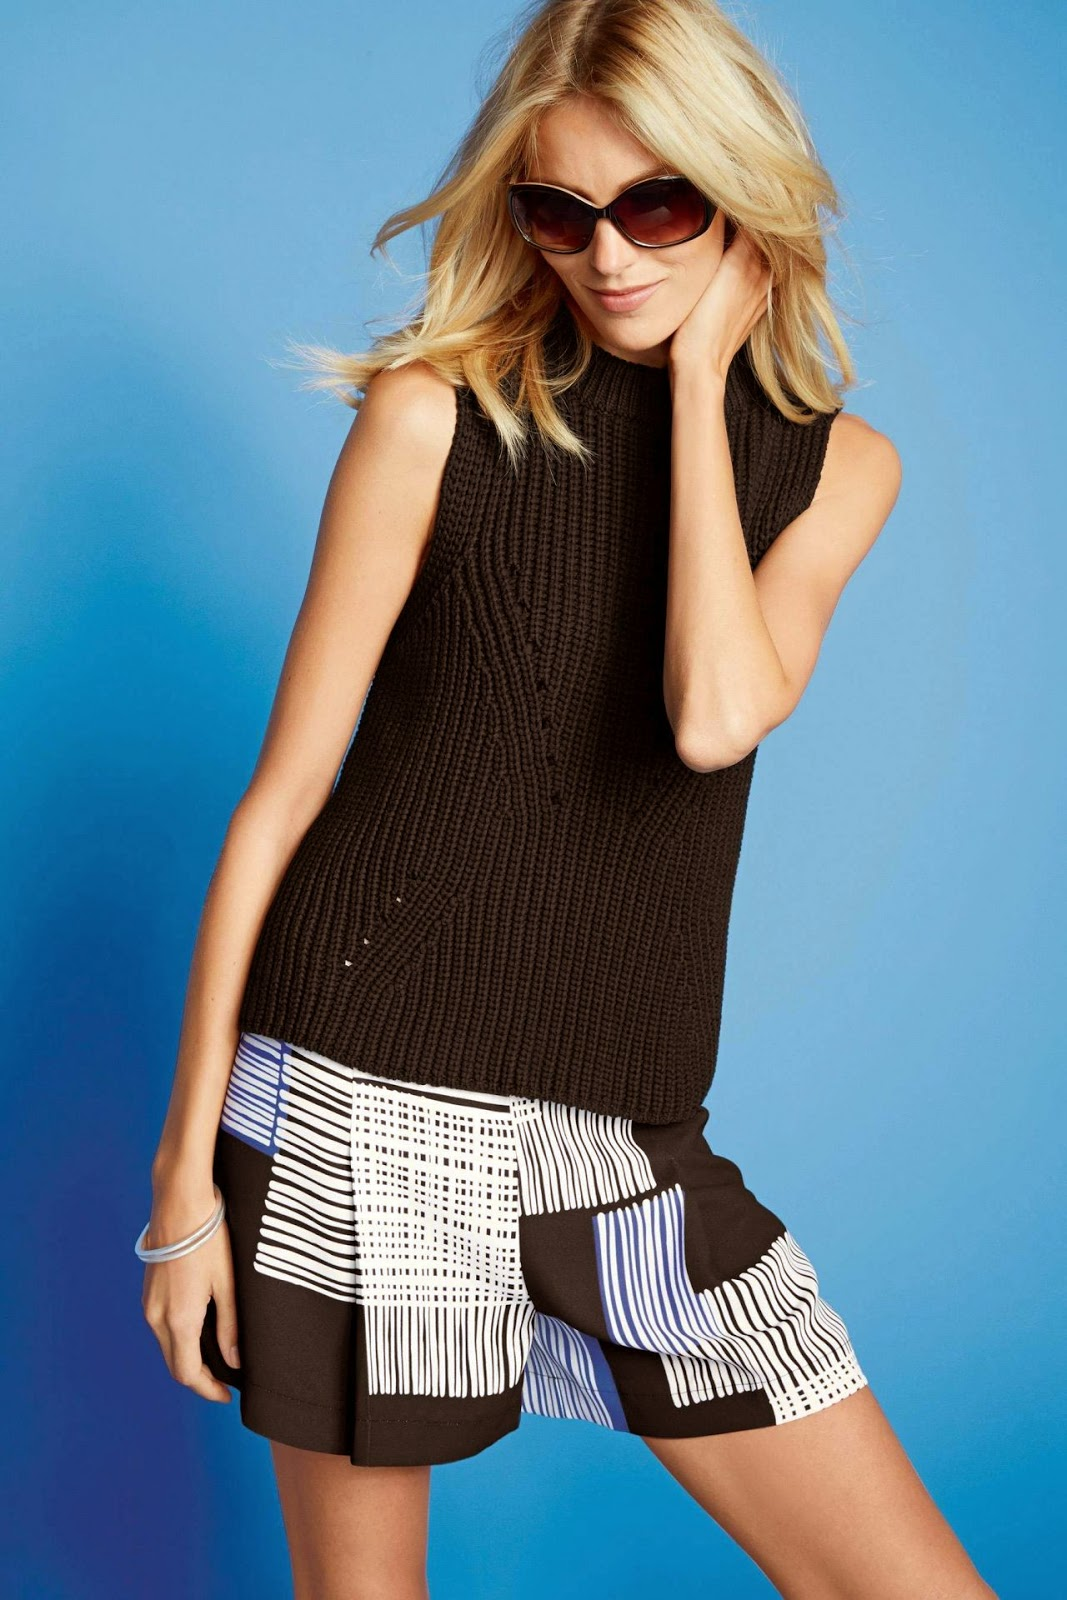 Anja Rubik poses for the Next Spring/Summer 2015 Lookbook